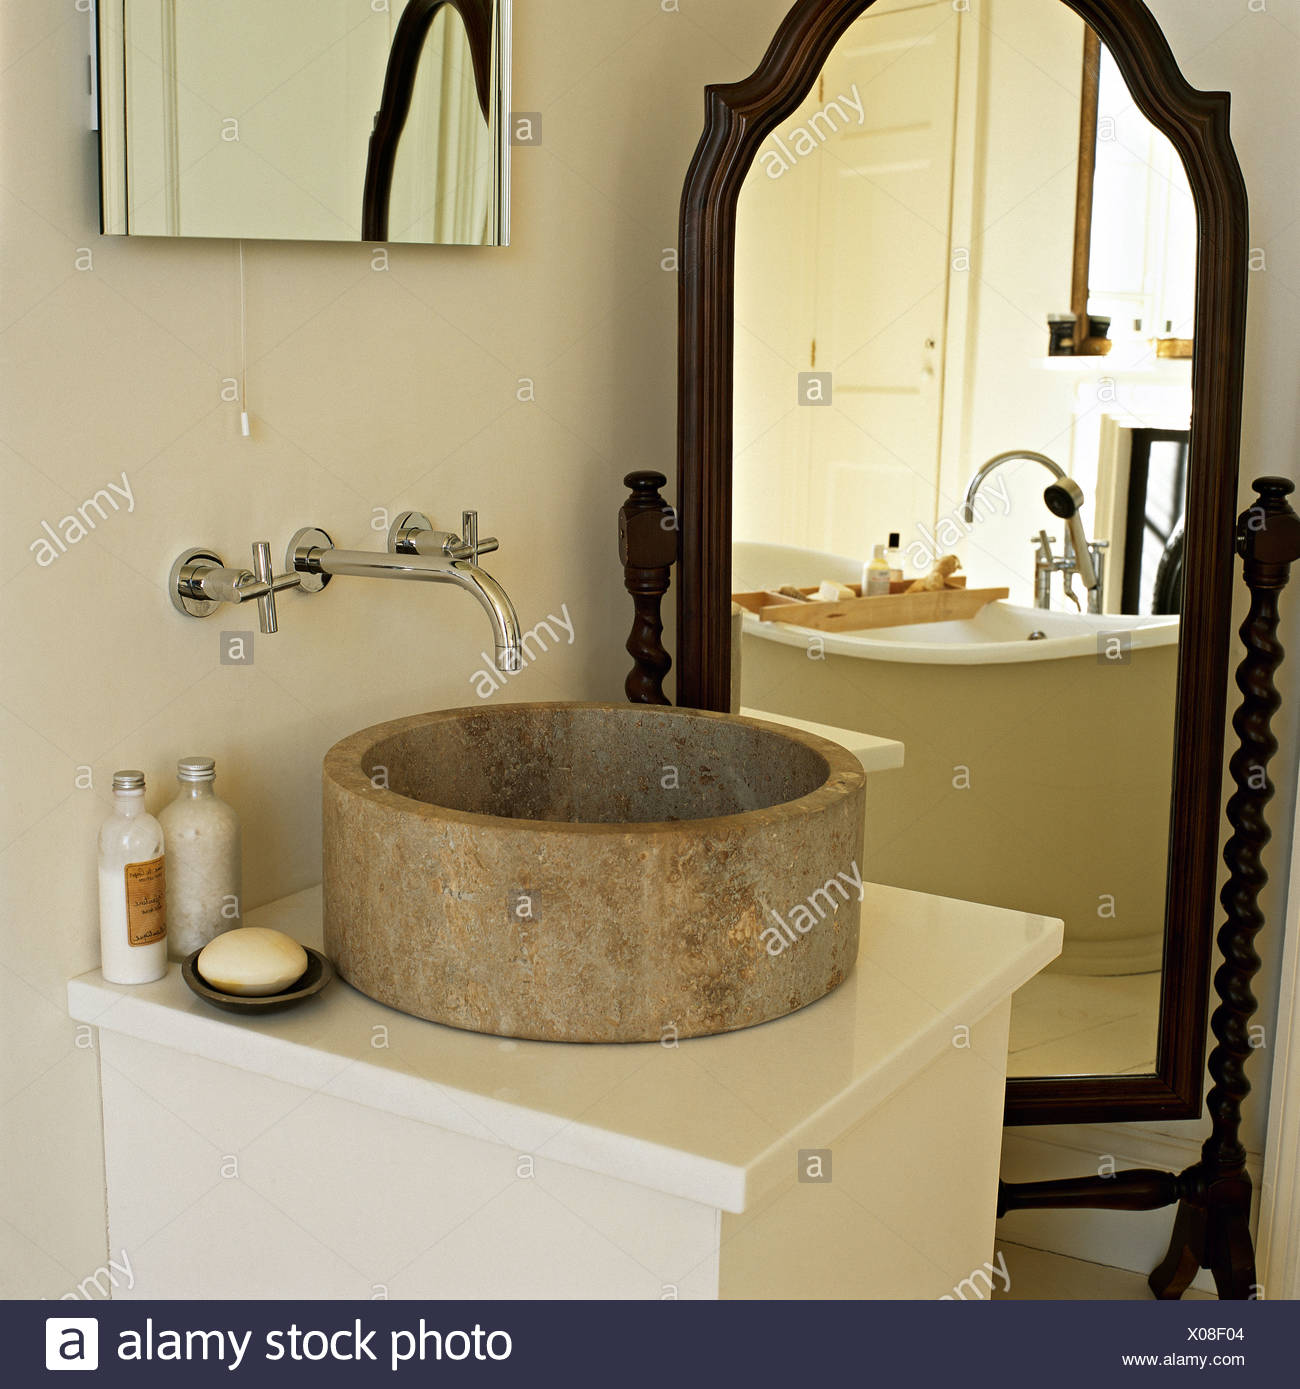 Wall mounted chrome tap above circular stone basin on simple vanity ...